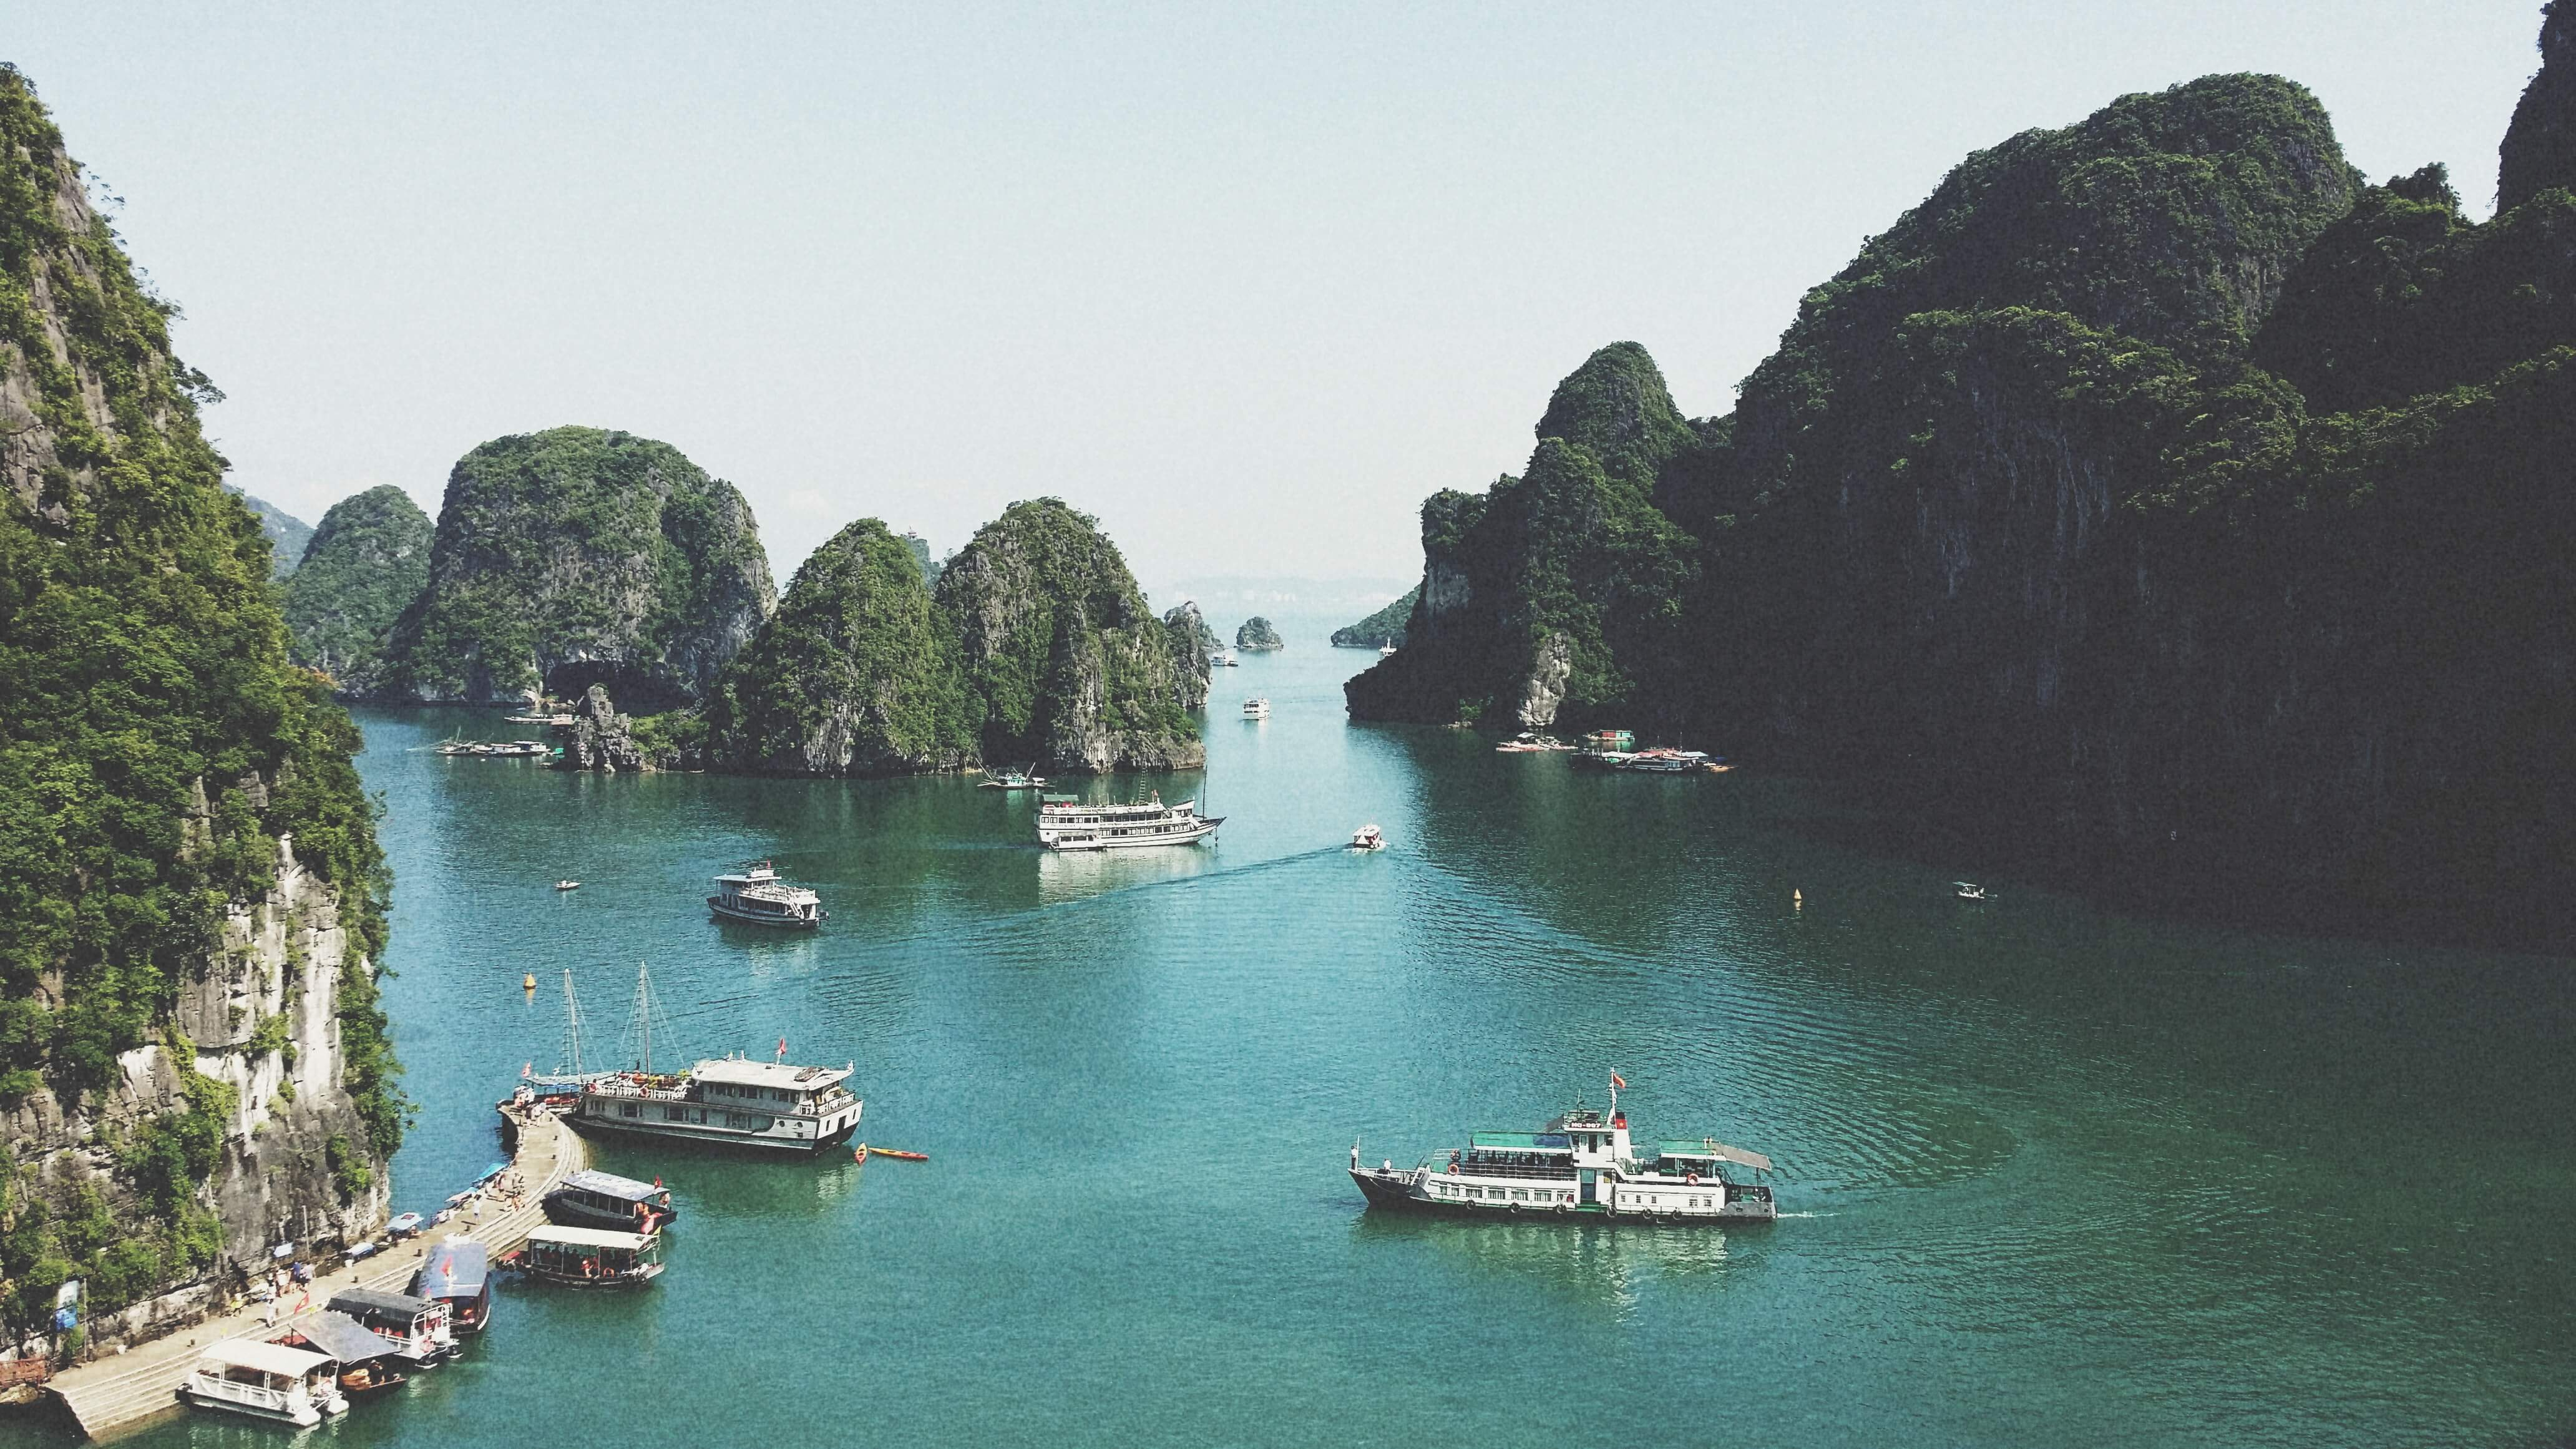 Halong Bay, visit Halong Bay, Family holiday, Best places Vietnam, When to go to Halong Bay, How to go to Halong Bay